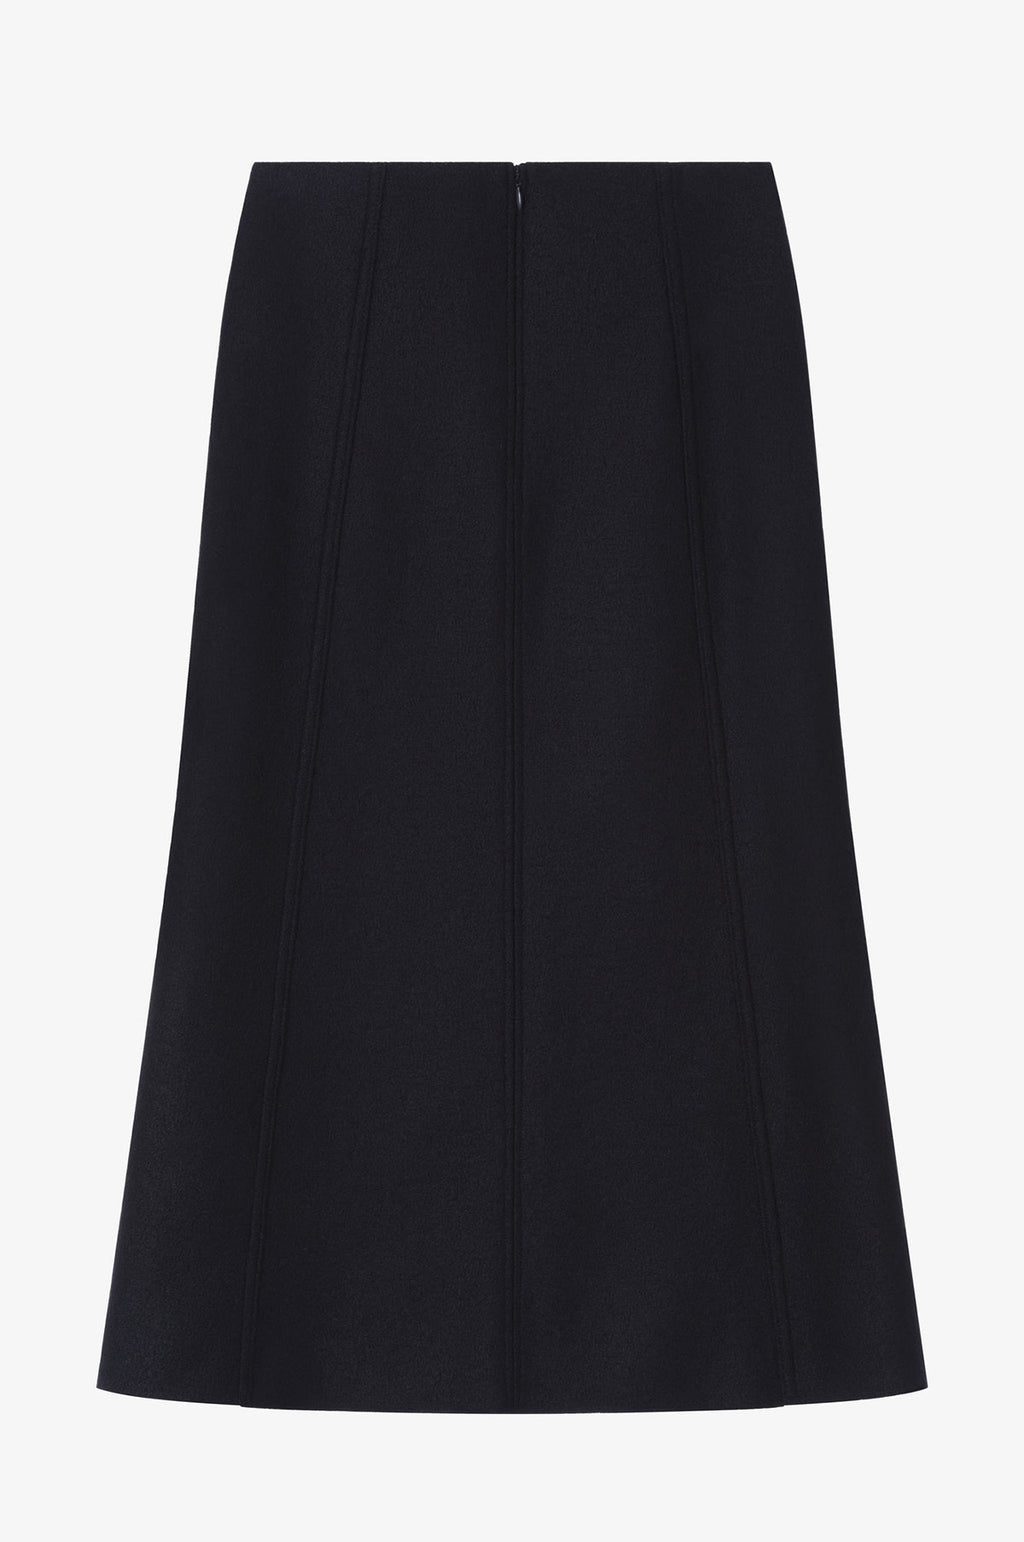 Gretta Skirt in Navy